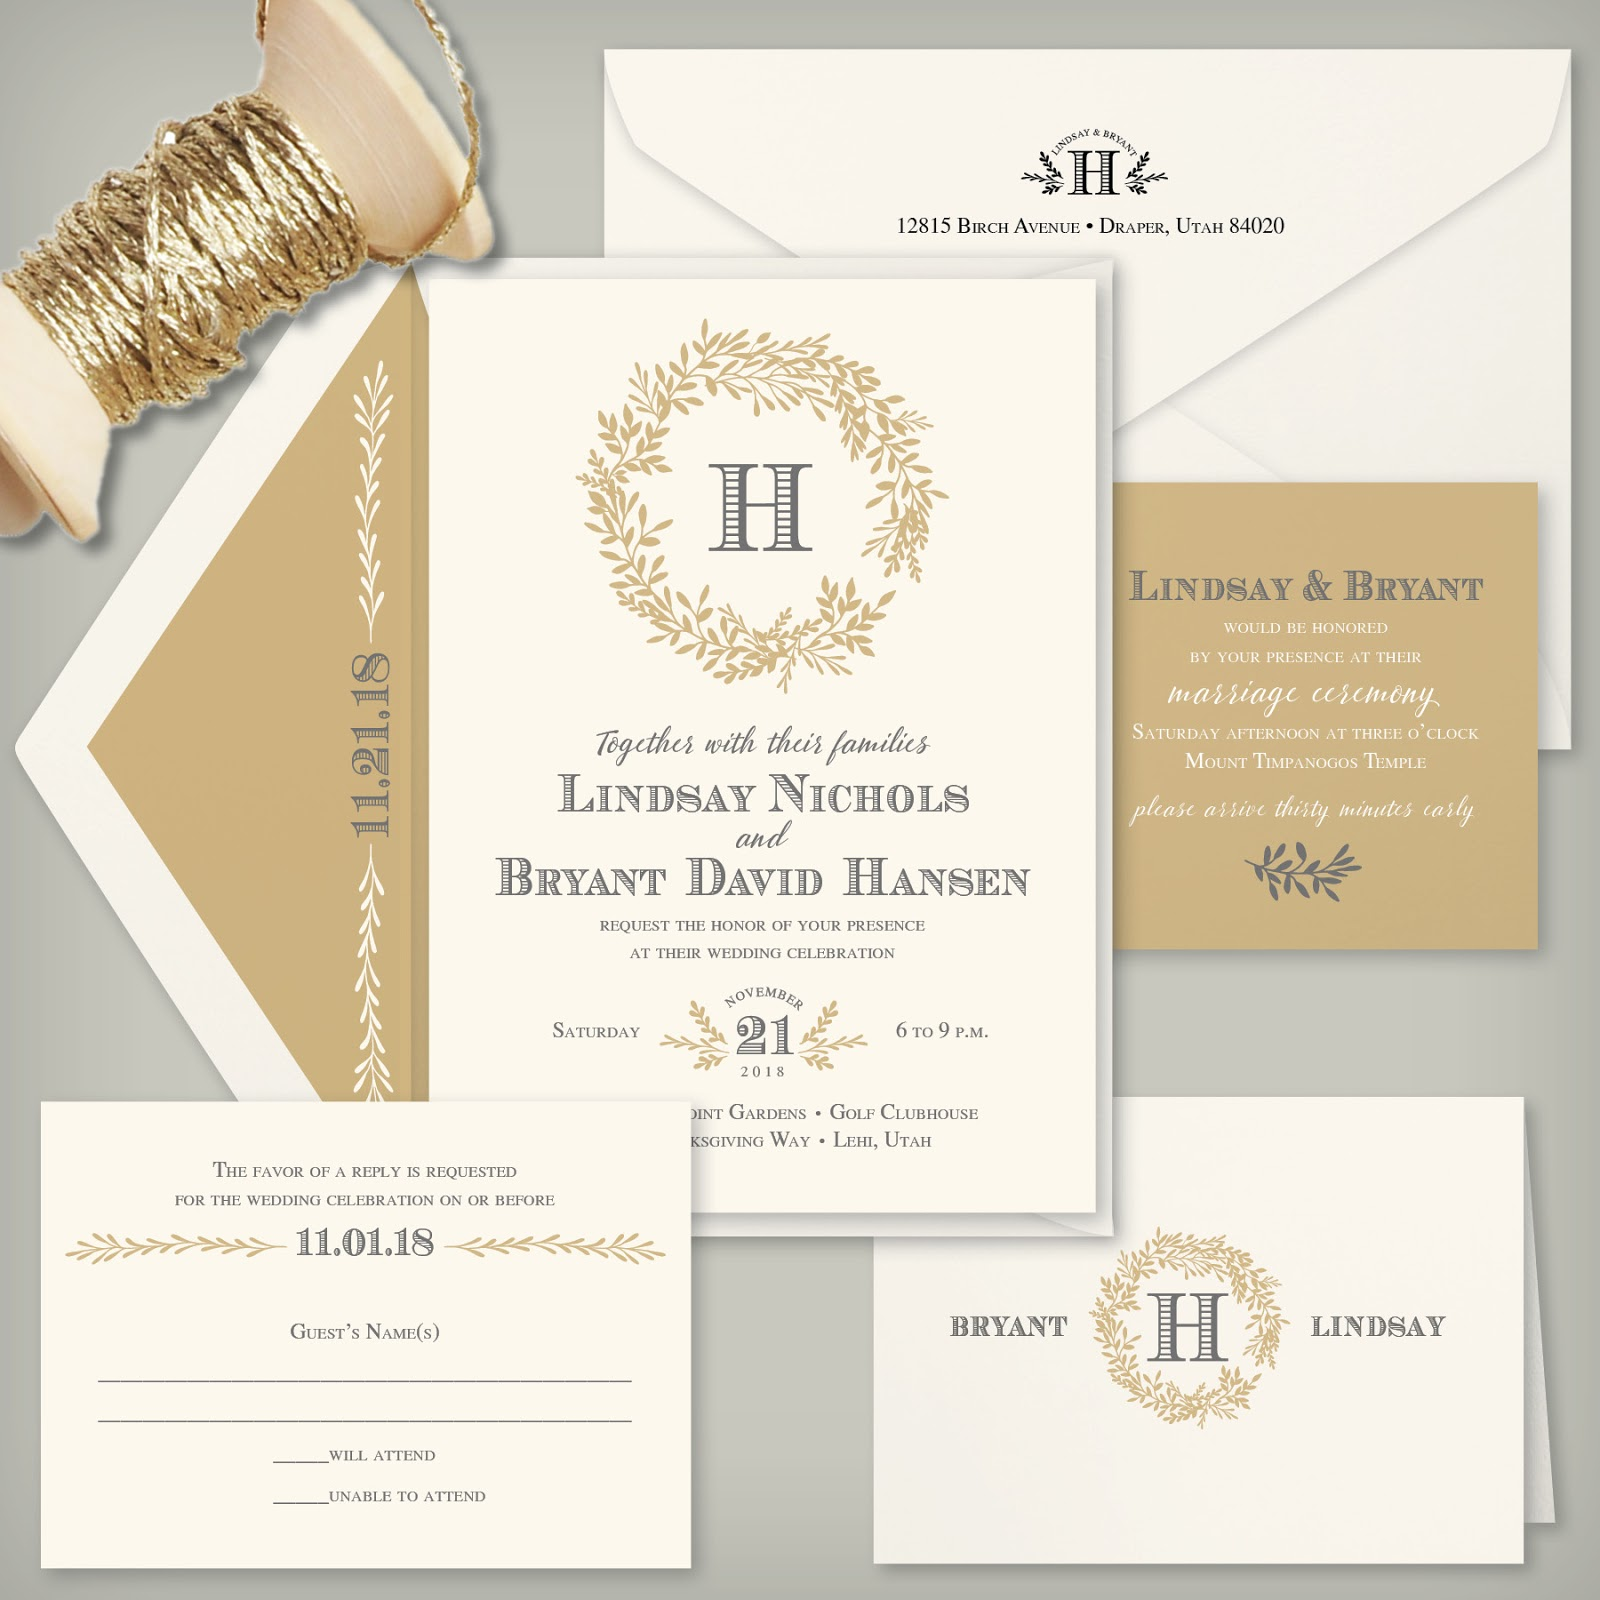 Wedding invitation blog wreaths continue to be ever popular this wedding season were especially loving the intricate detail of the wreath shown on the lindsay invitation monicamarmolfo Images